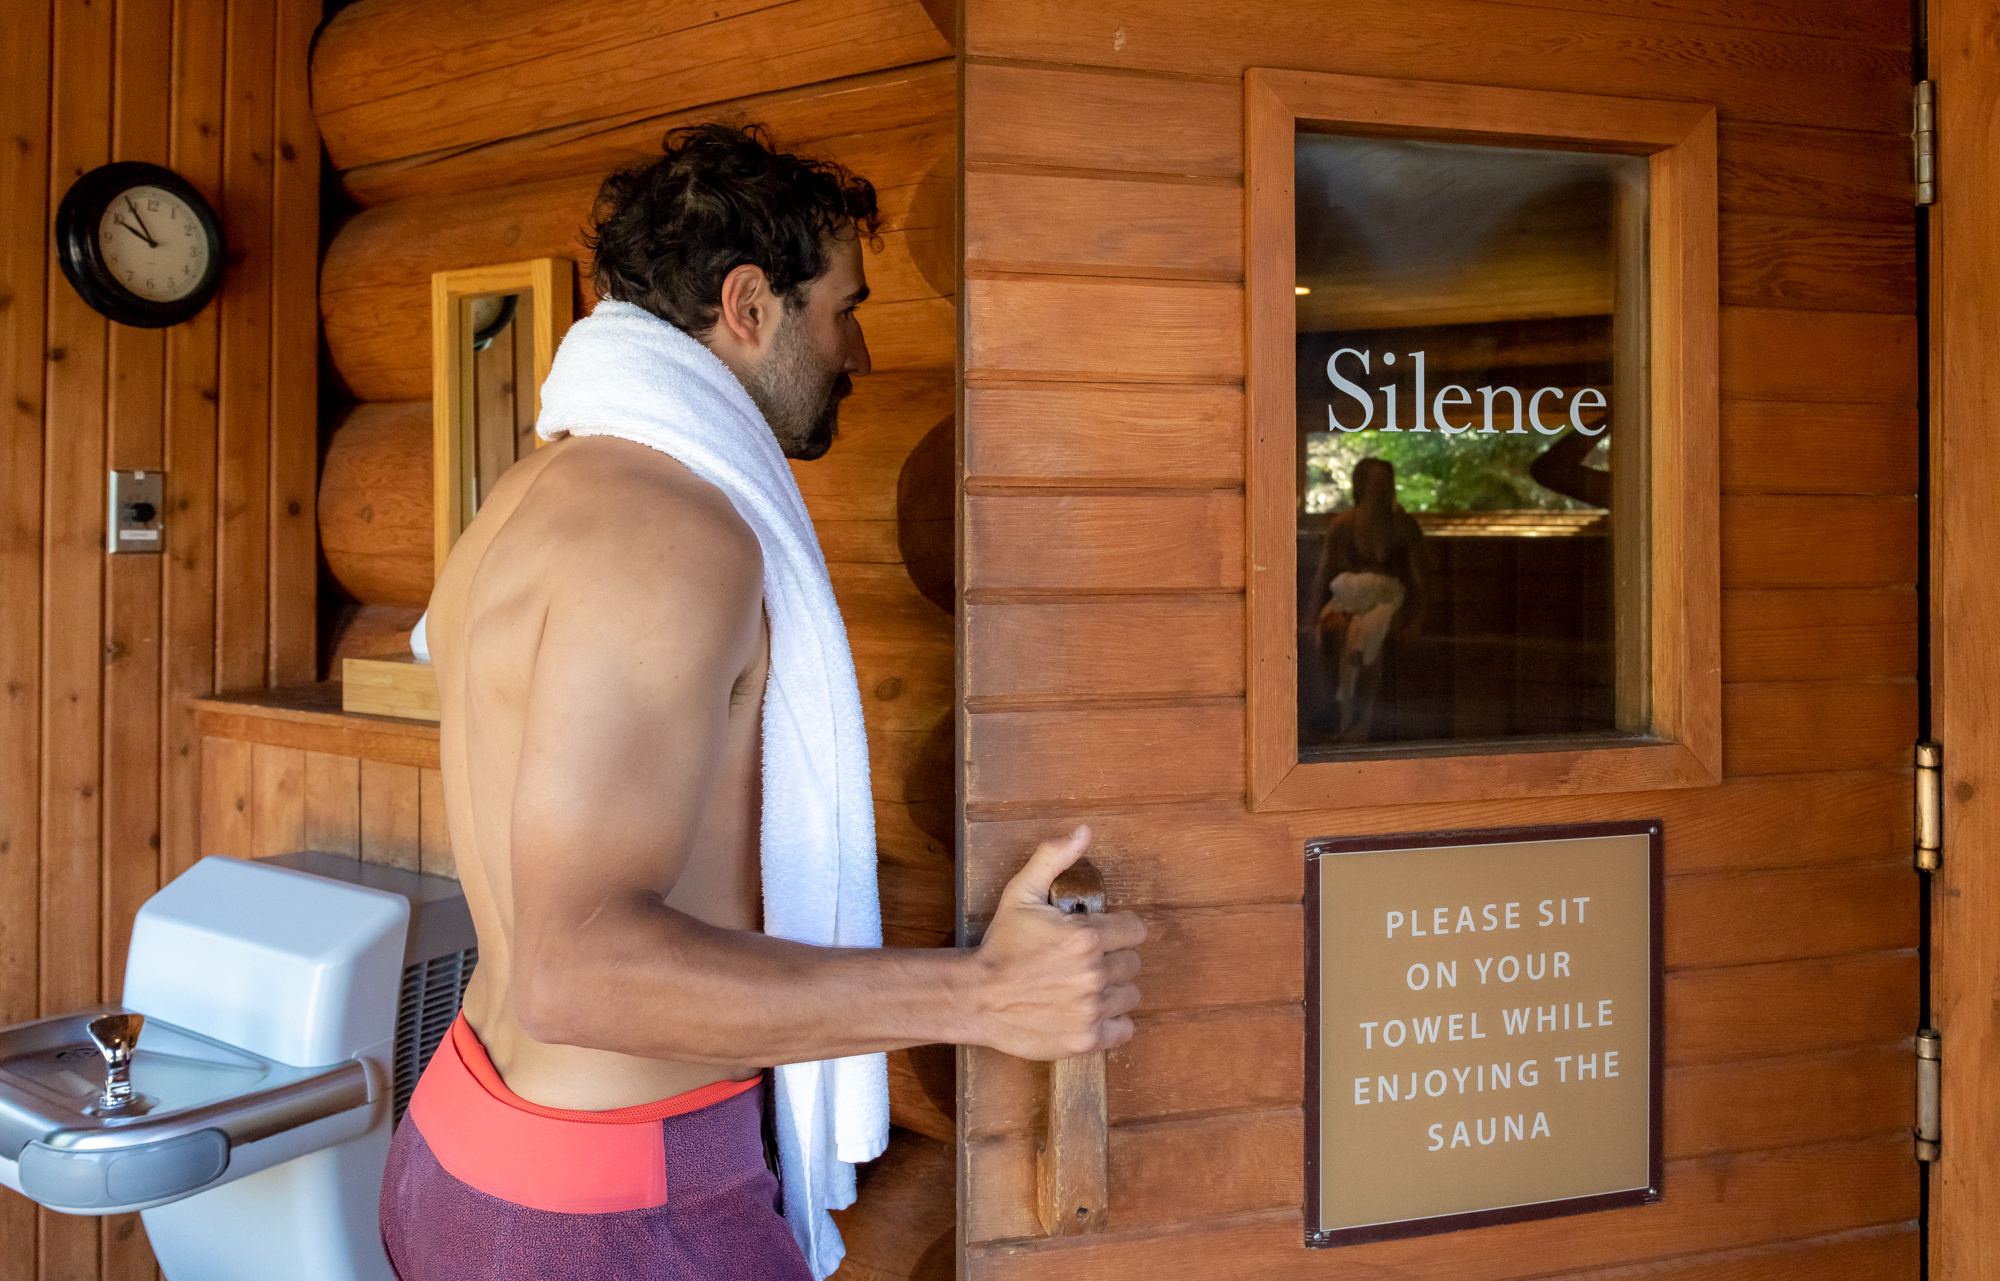 Man opening sauna door with silence printed on the glass